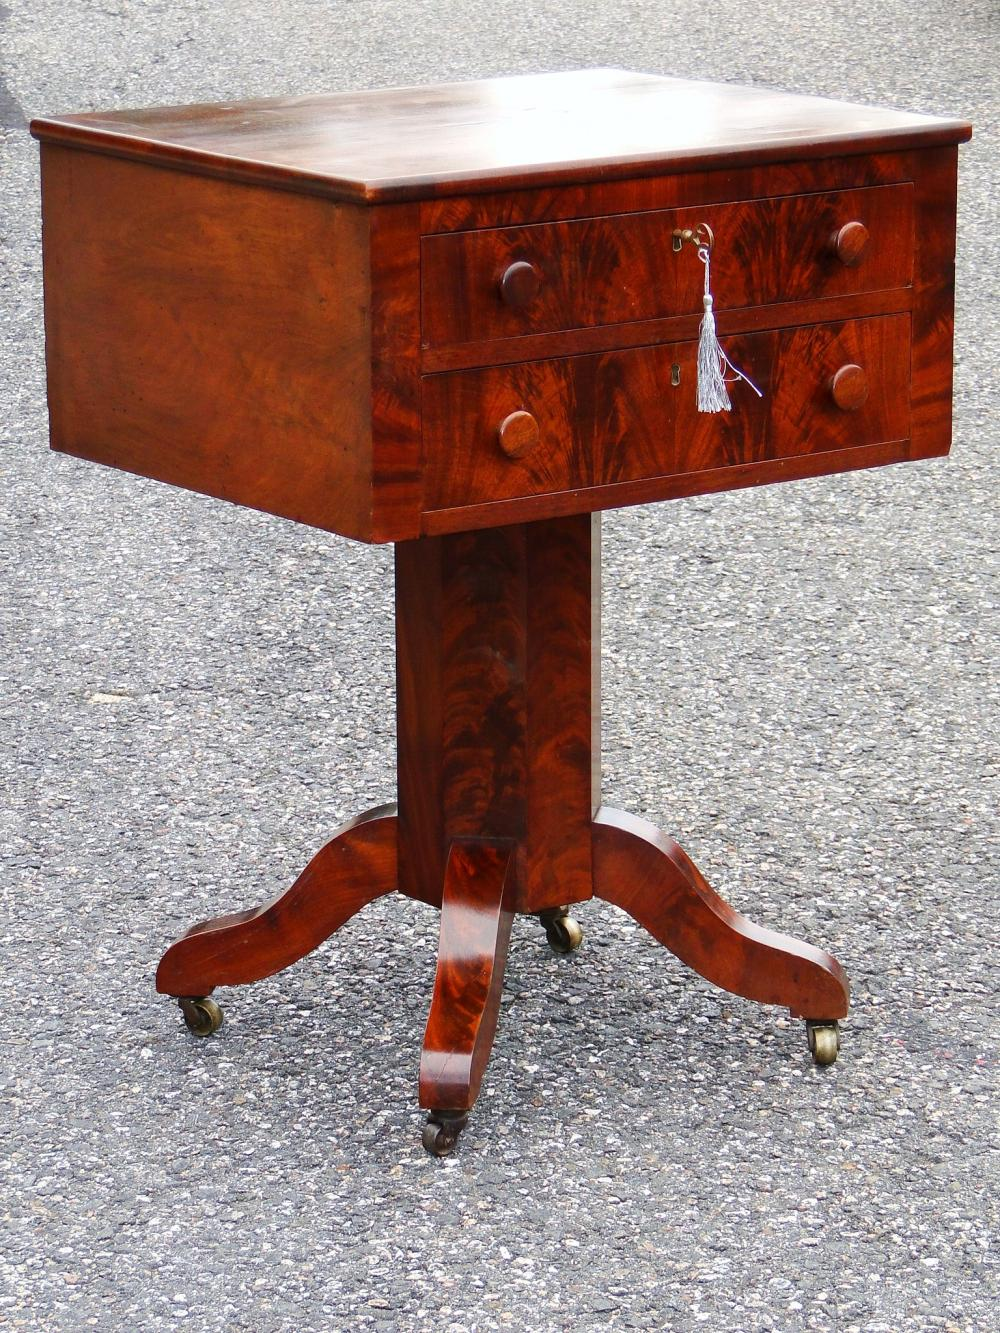 Lot 100J: 19TH C AMERICAN EMPIRE STAND